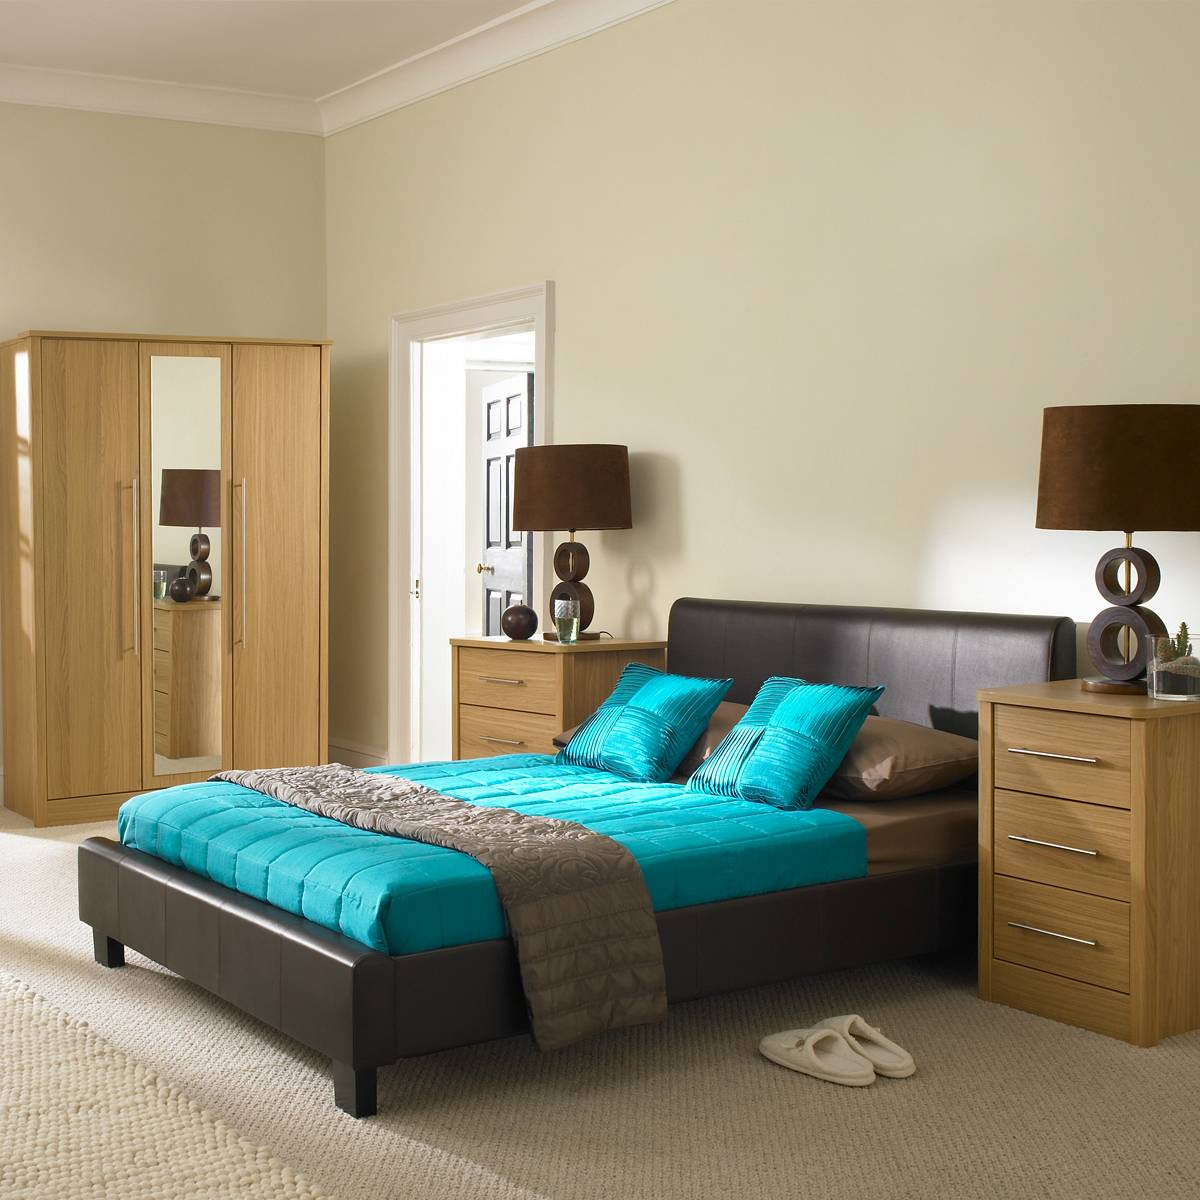 Big Bedroom with Blue Bed 687.66 Kb